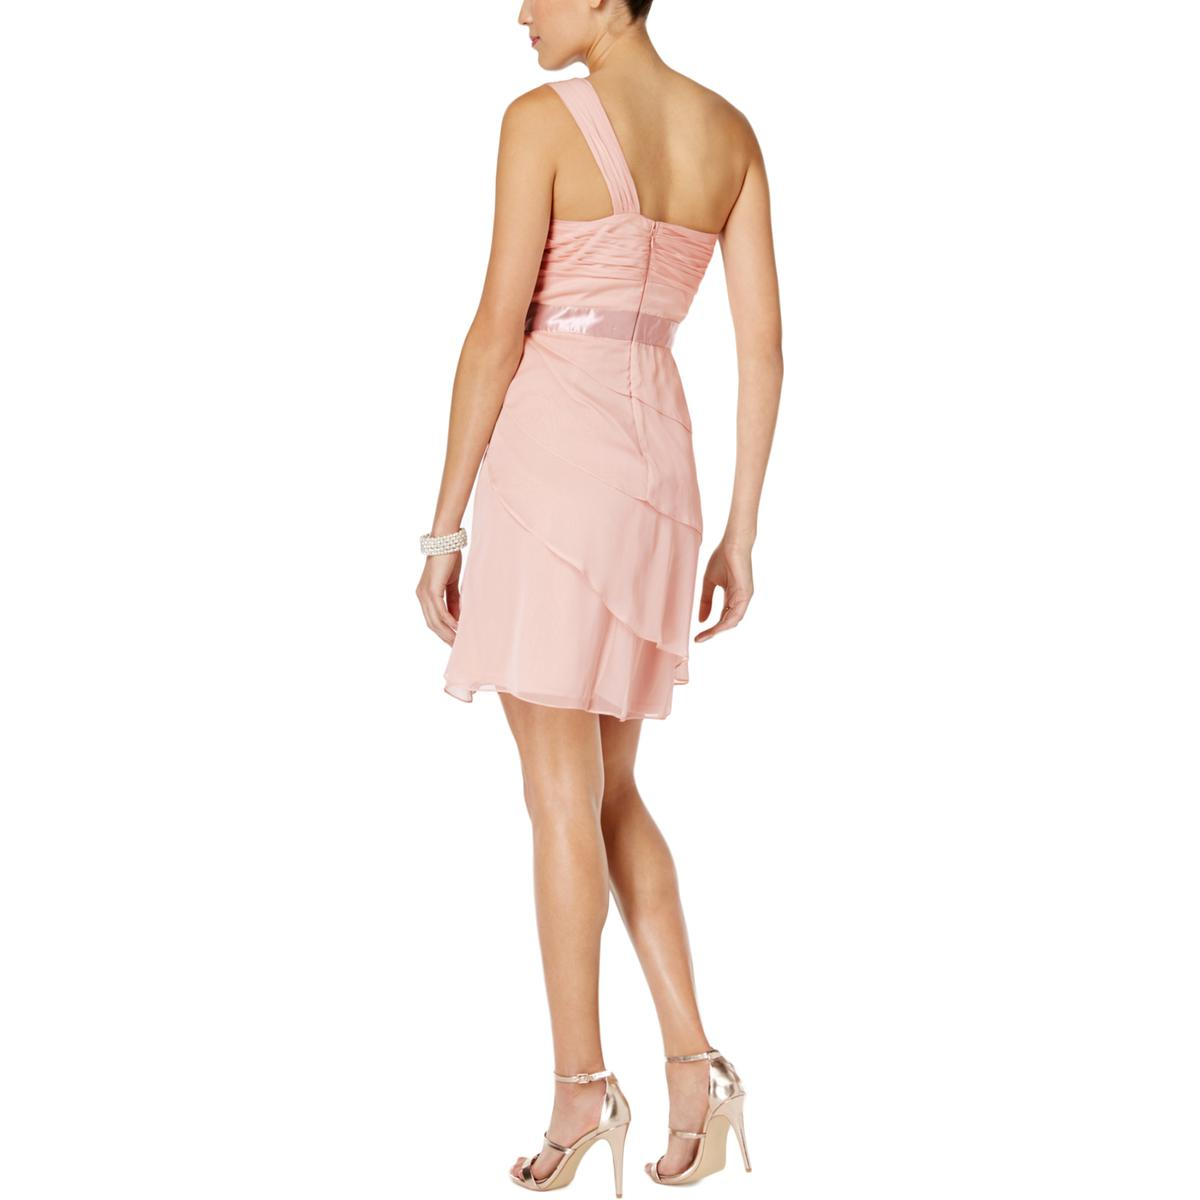 Adrianna-Papell-Womens-Tiered-One-Shoulder-Party-Cocktail-Dress-BHFO-6662 thumbnail 7